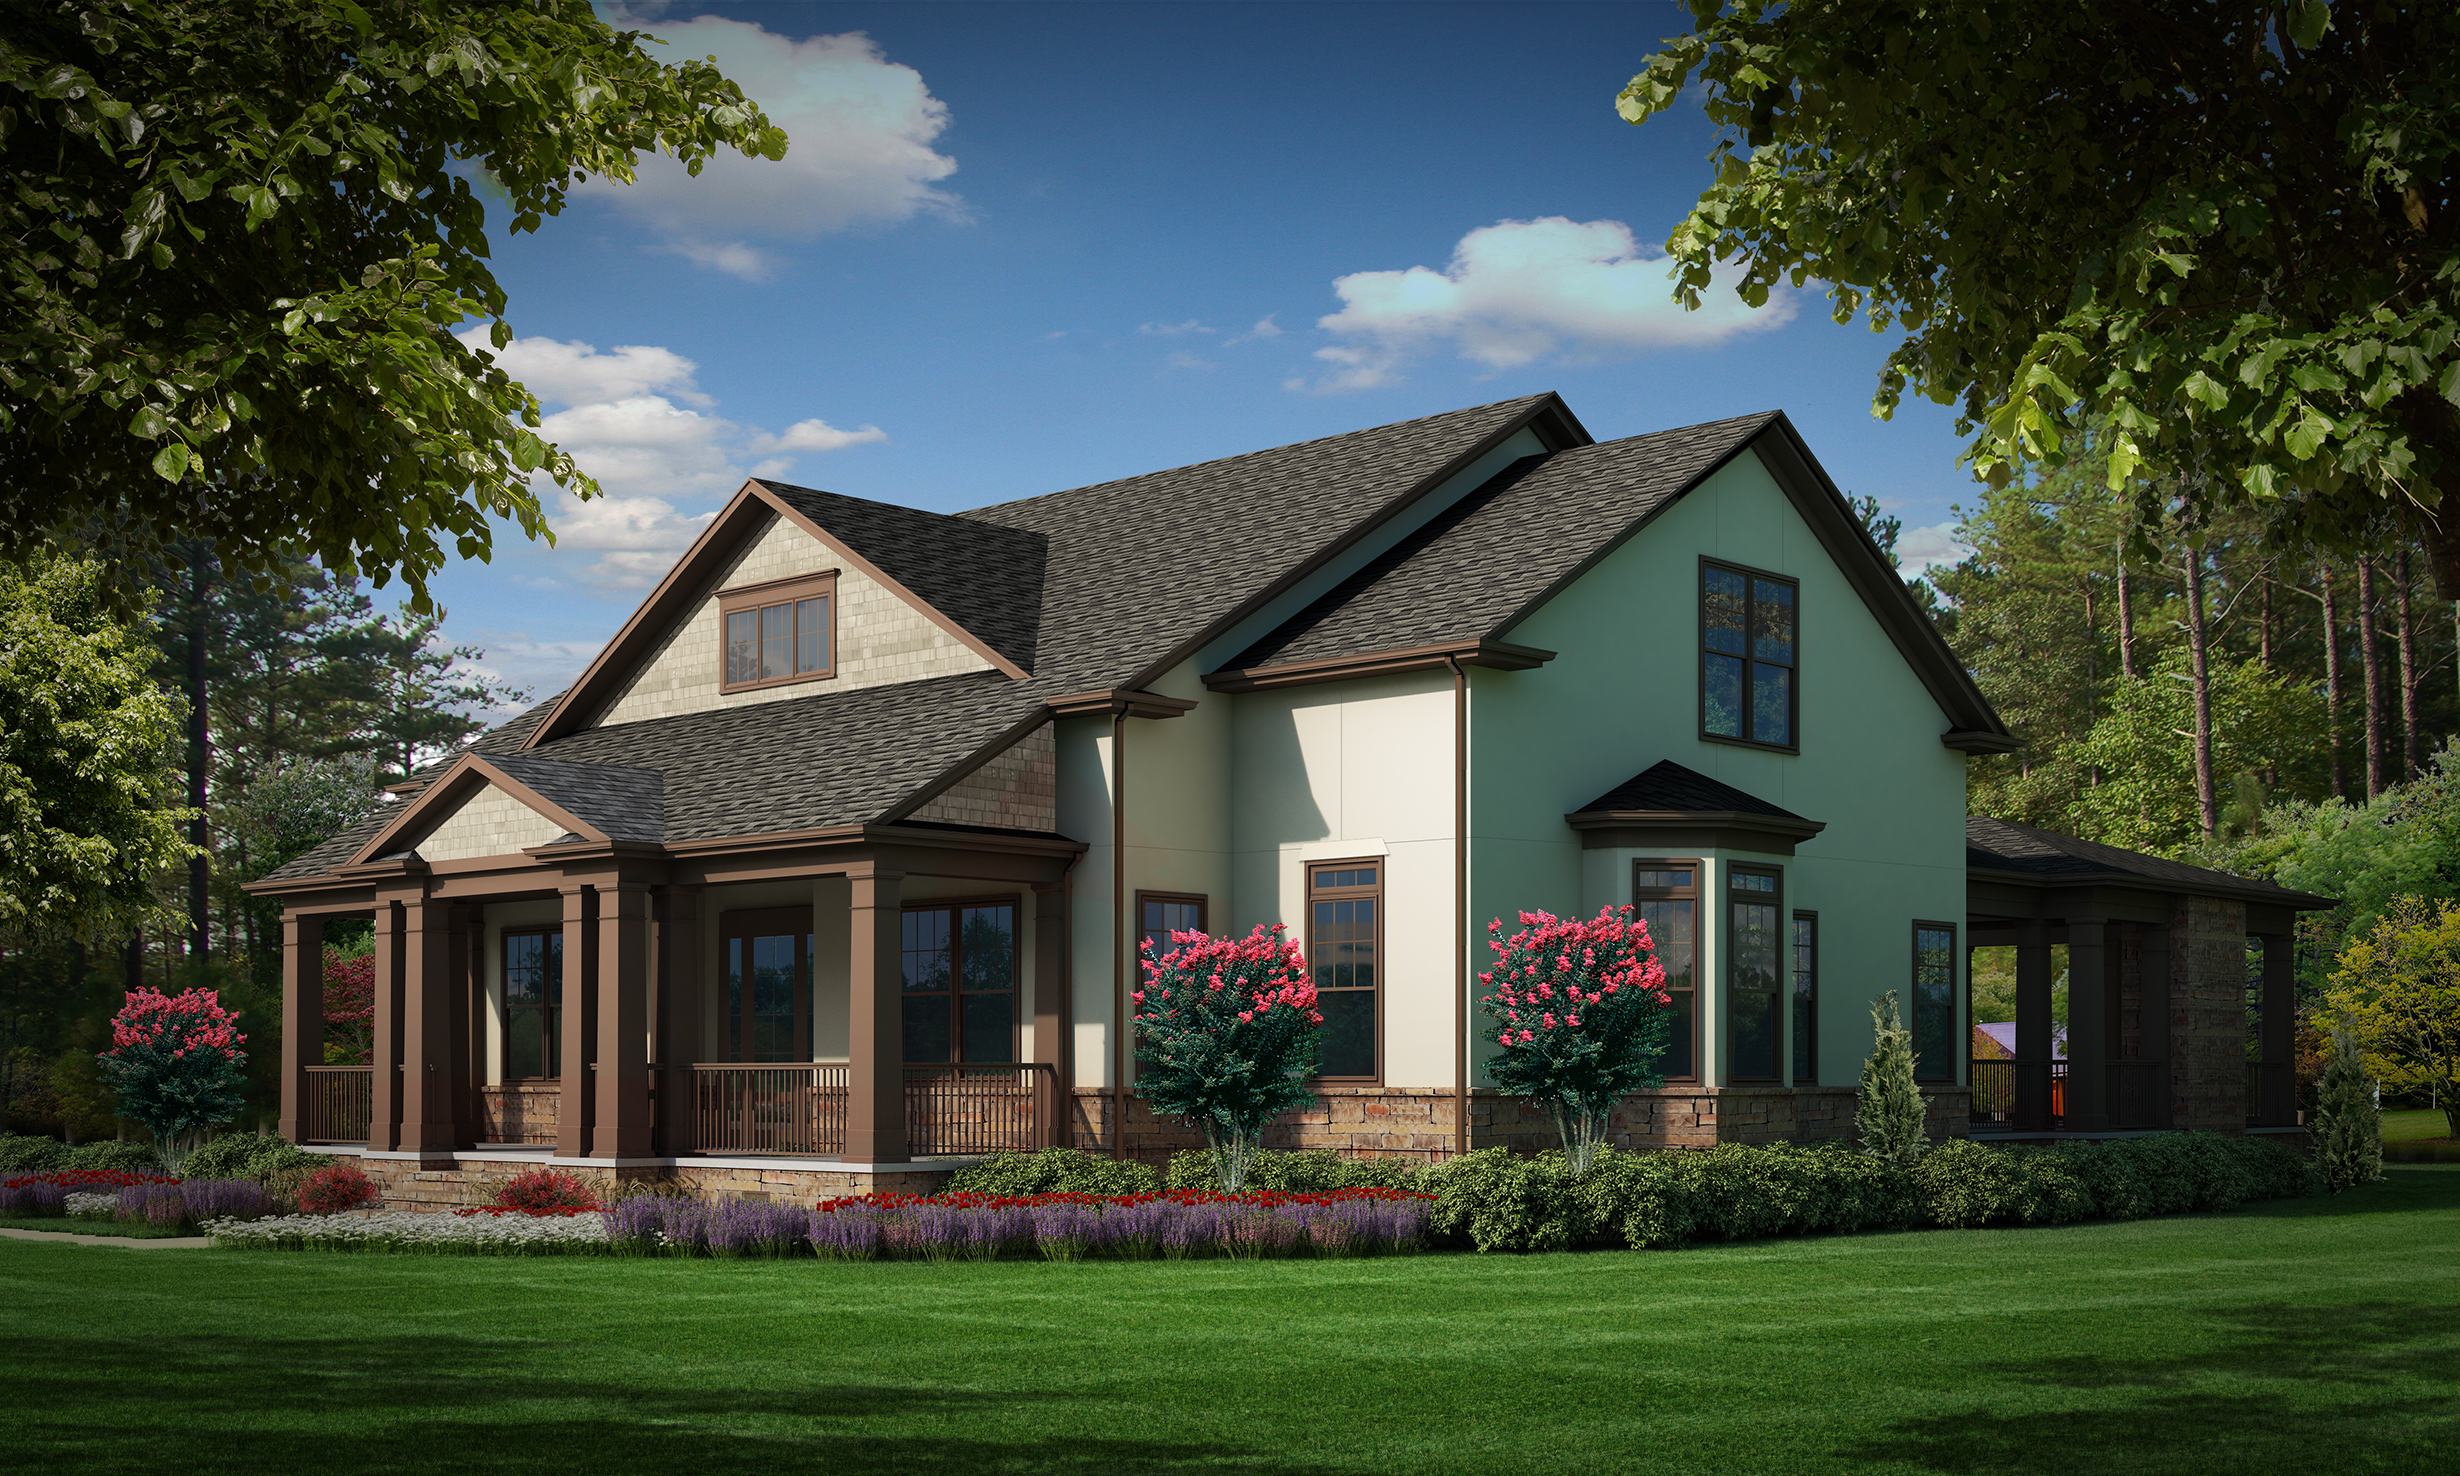 """Option A (Stucco)  Total SF 6042 sq. ft. Total SF heated 4093 sq. ft. Bedrooms 4 Bathrooms 4.5 Width: 77'-9"""" Depth: 77'-0"""" Attached three-car garage Bonus room Front covered porch Rear covered porch"""